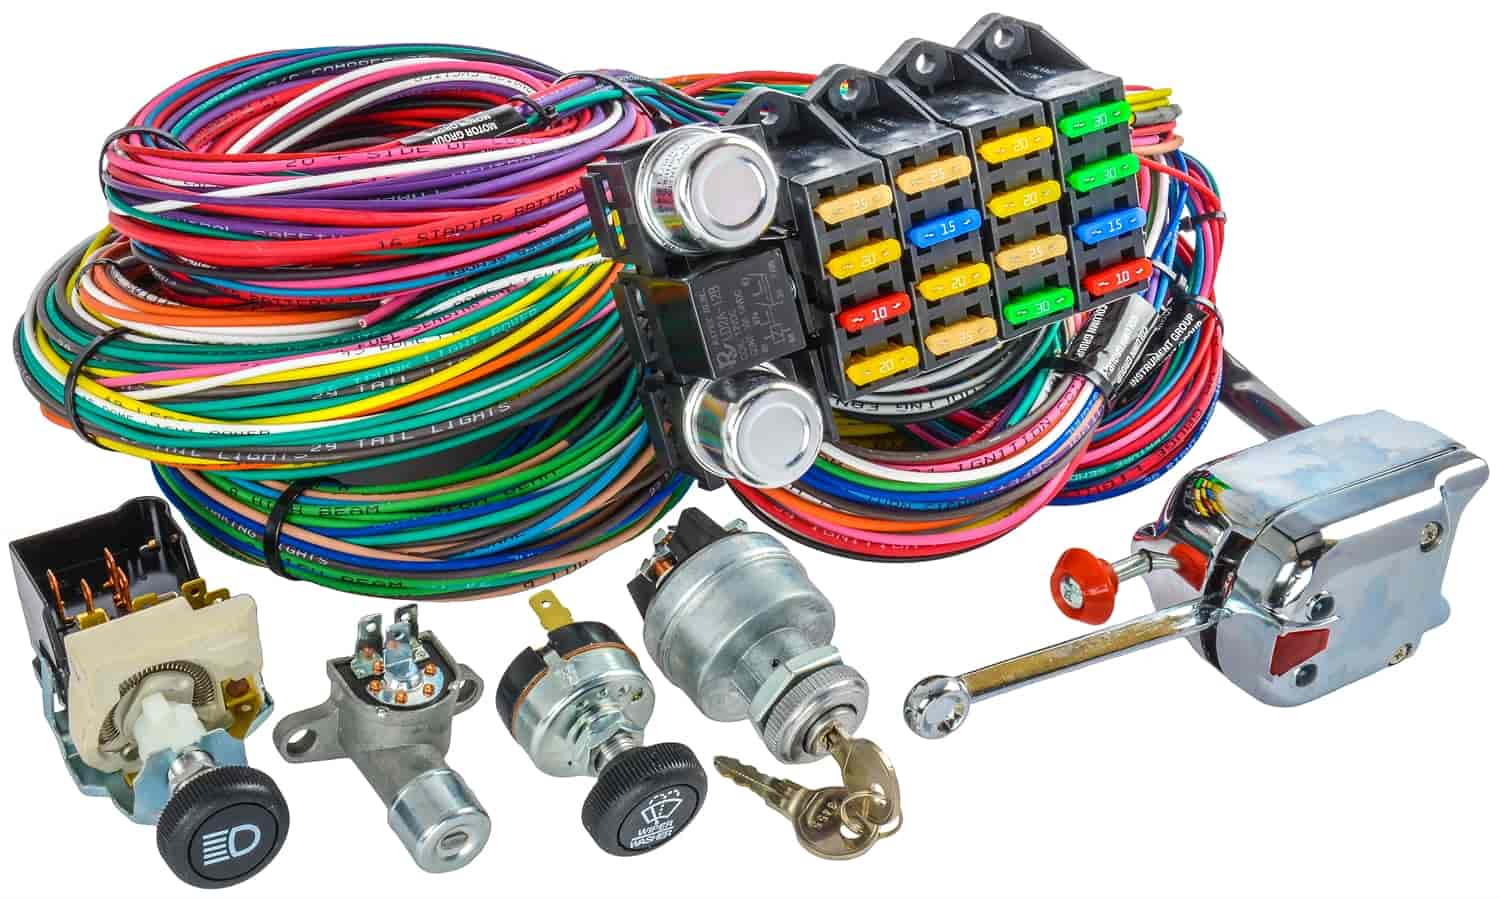 555 10405k jegs performance products 10405k universal wiring harness universal wiring harness kits at mr168.co